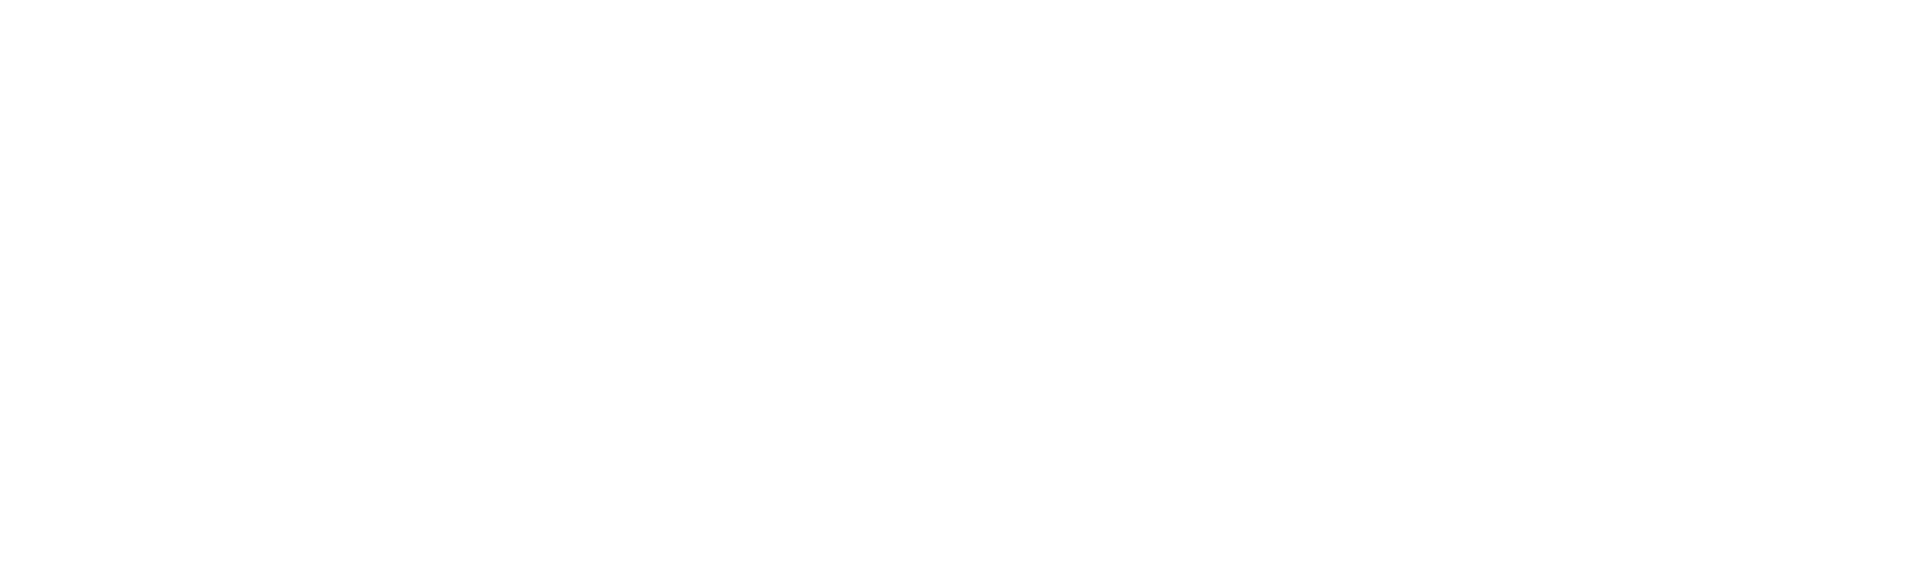 Proud Component of the American Physical Therapy Association, APTA